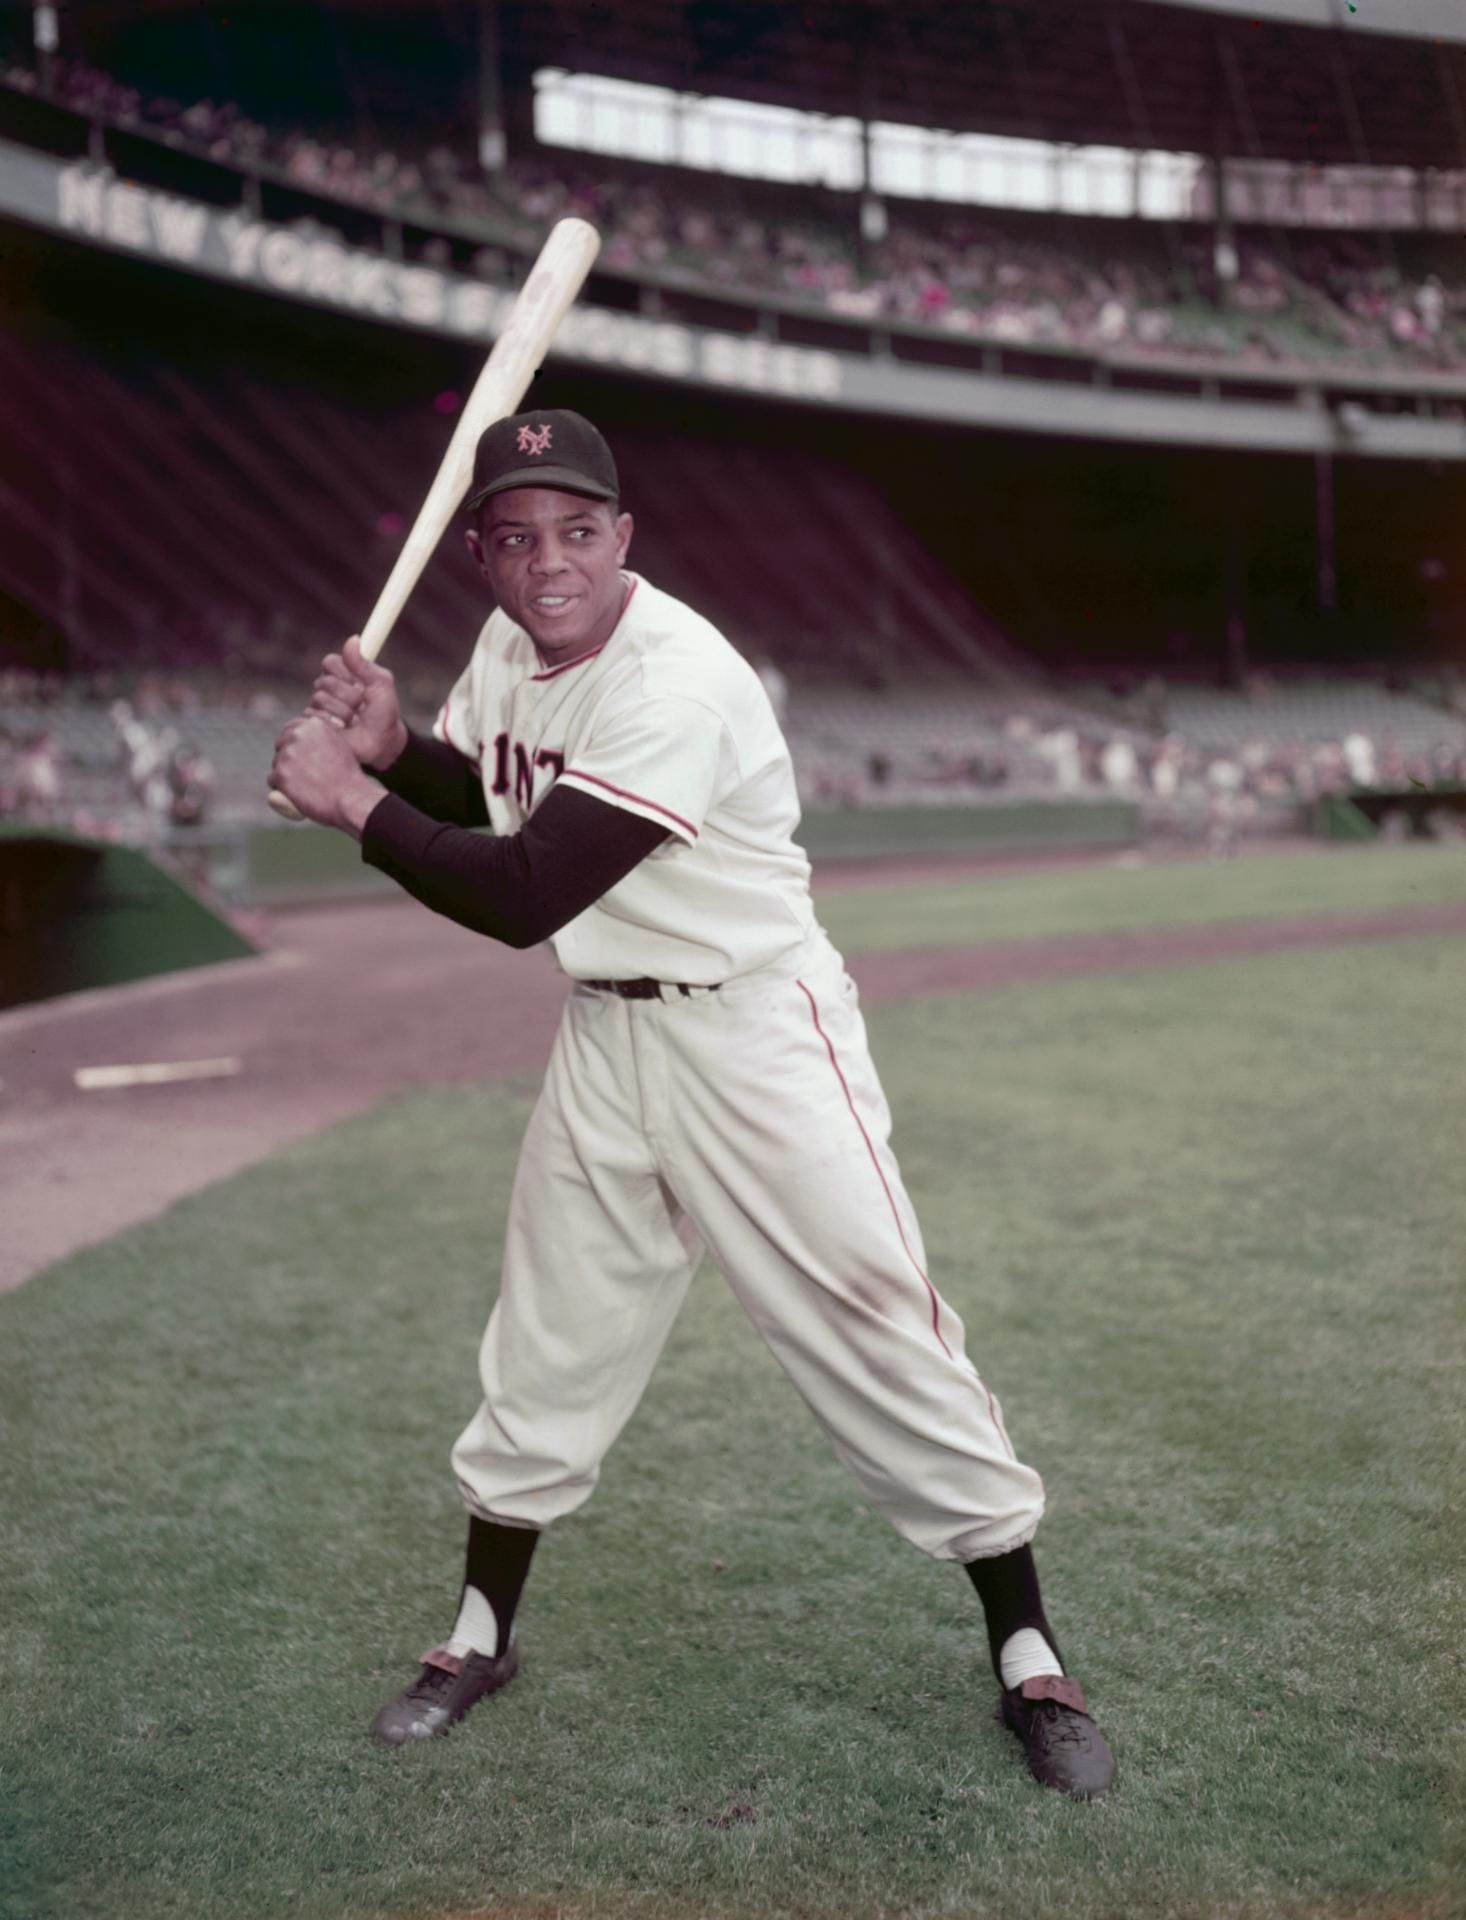 Willie Mays. The original 5tool player. One of the